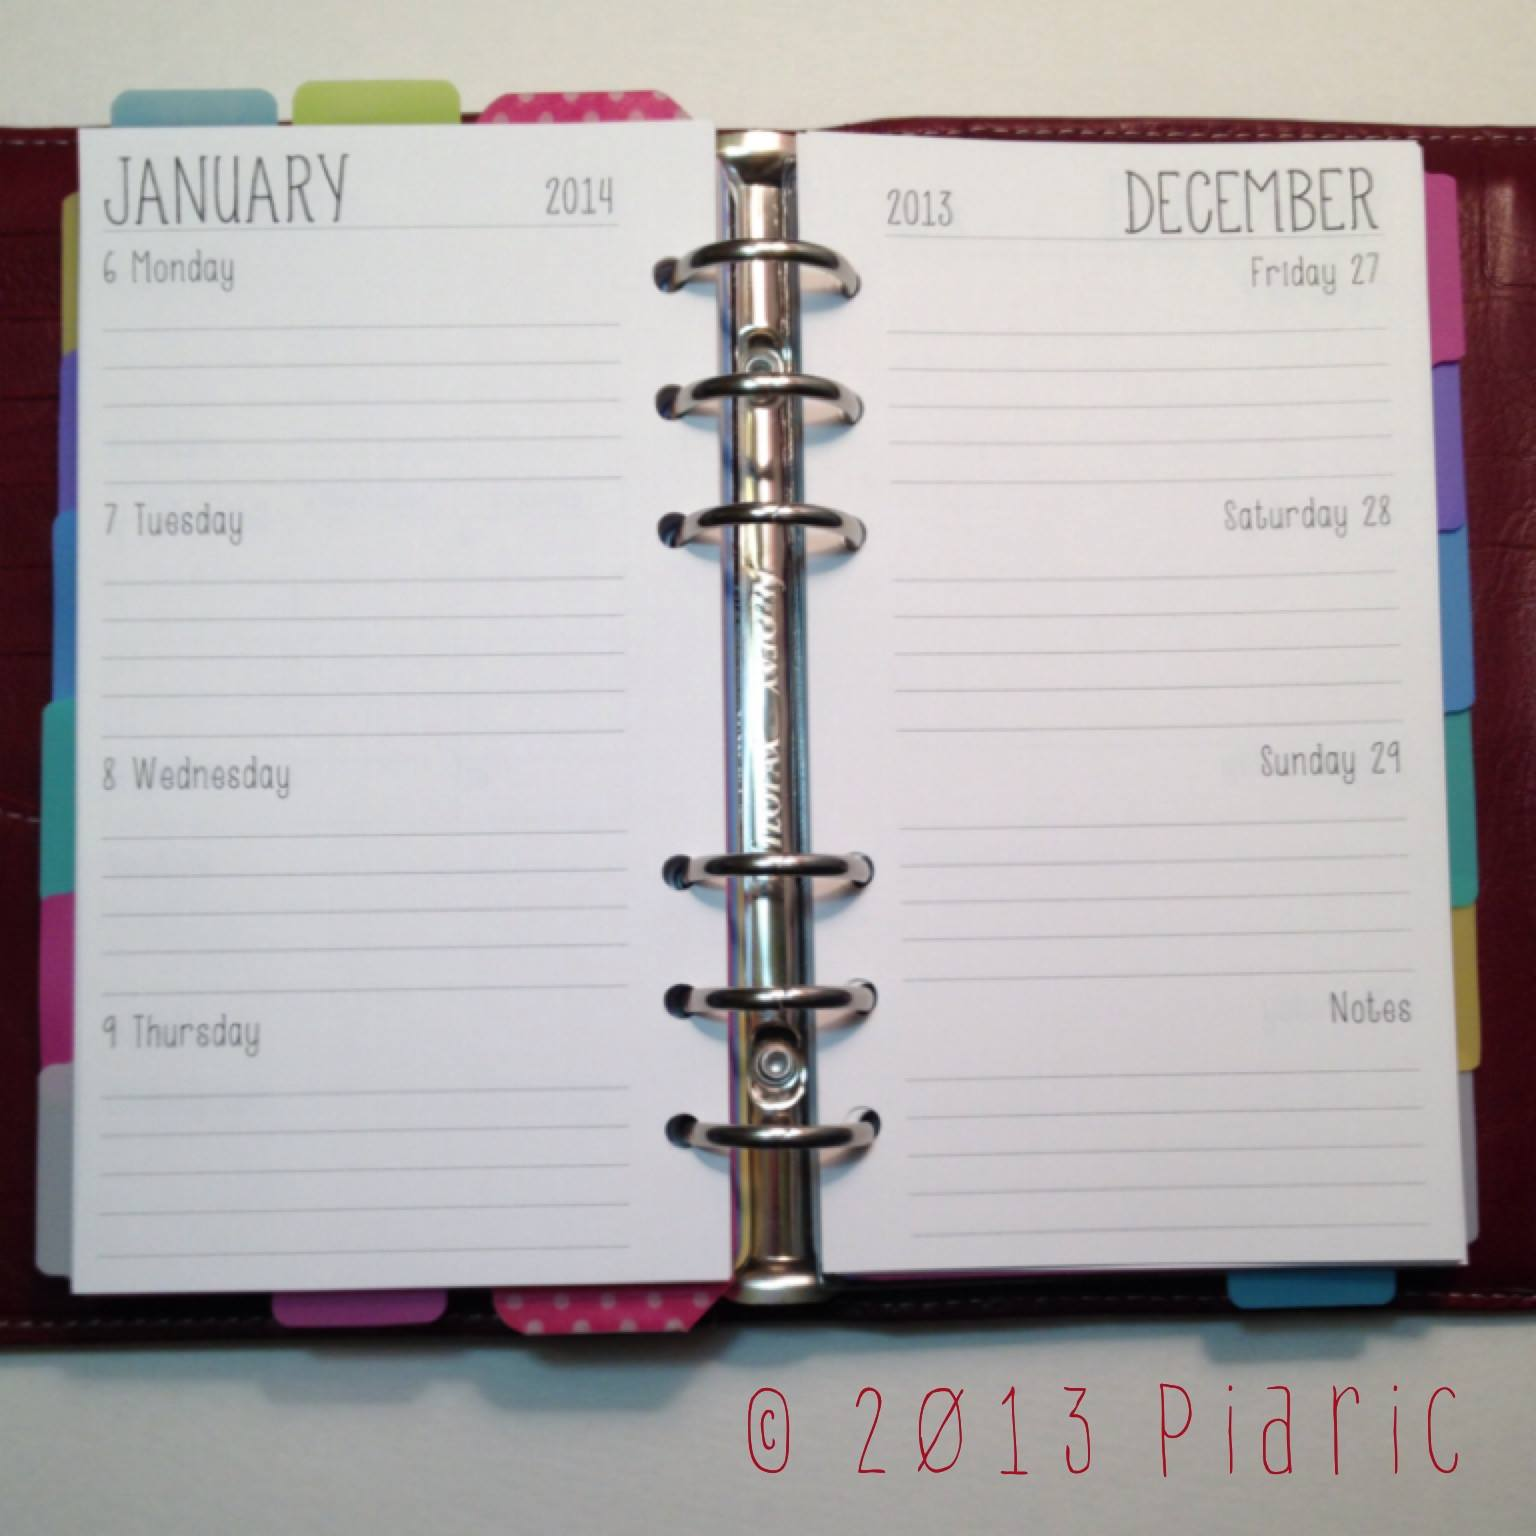 Free Printable Planner Inserts for Franklin Covey/Filofax – This